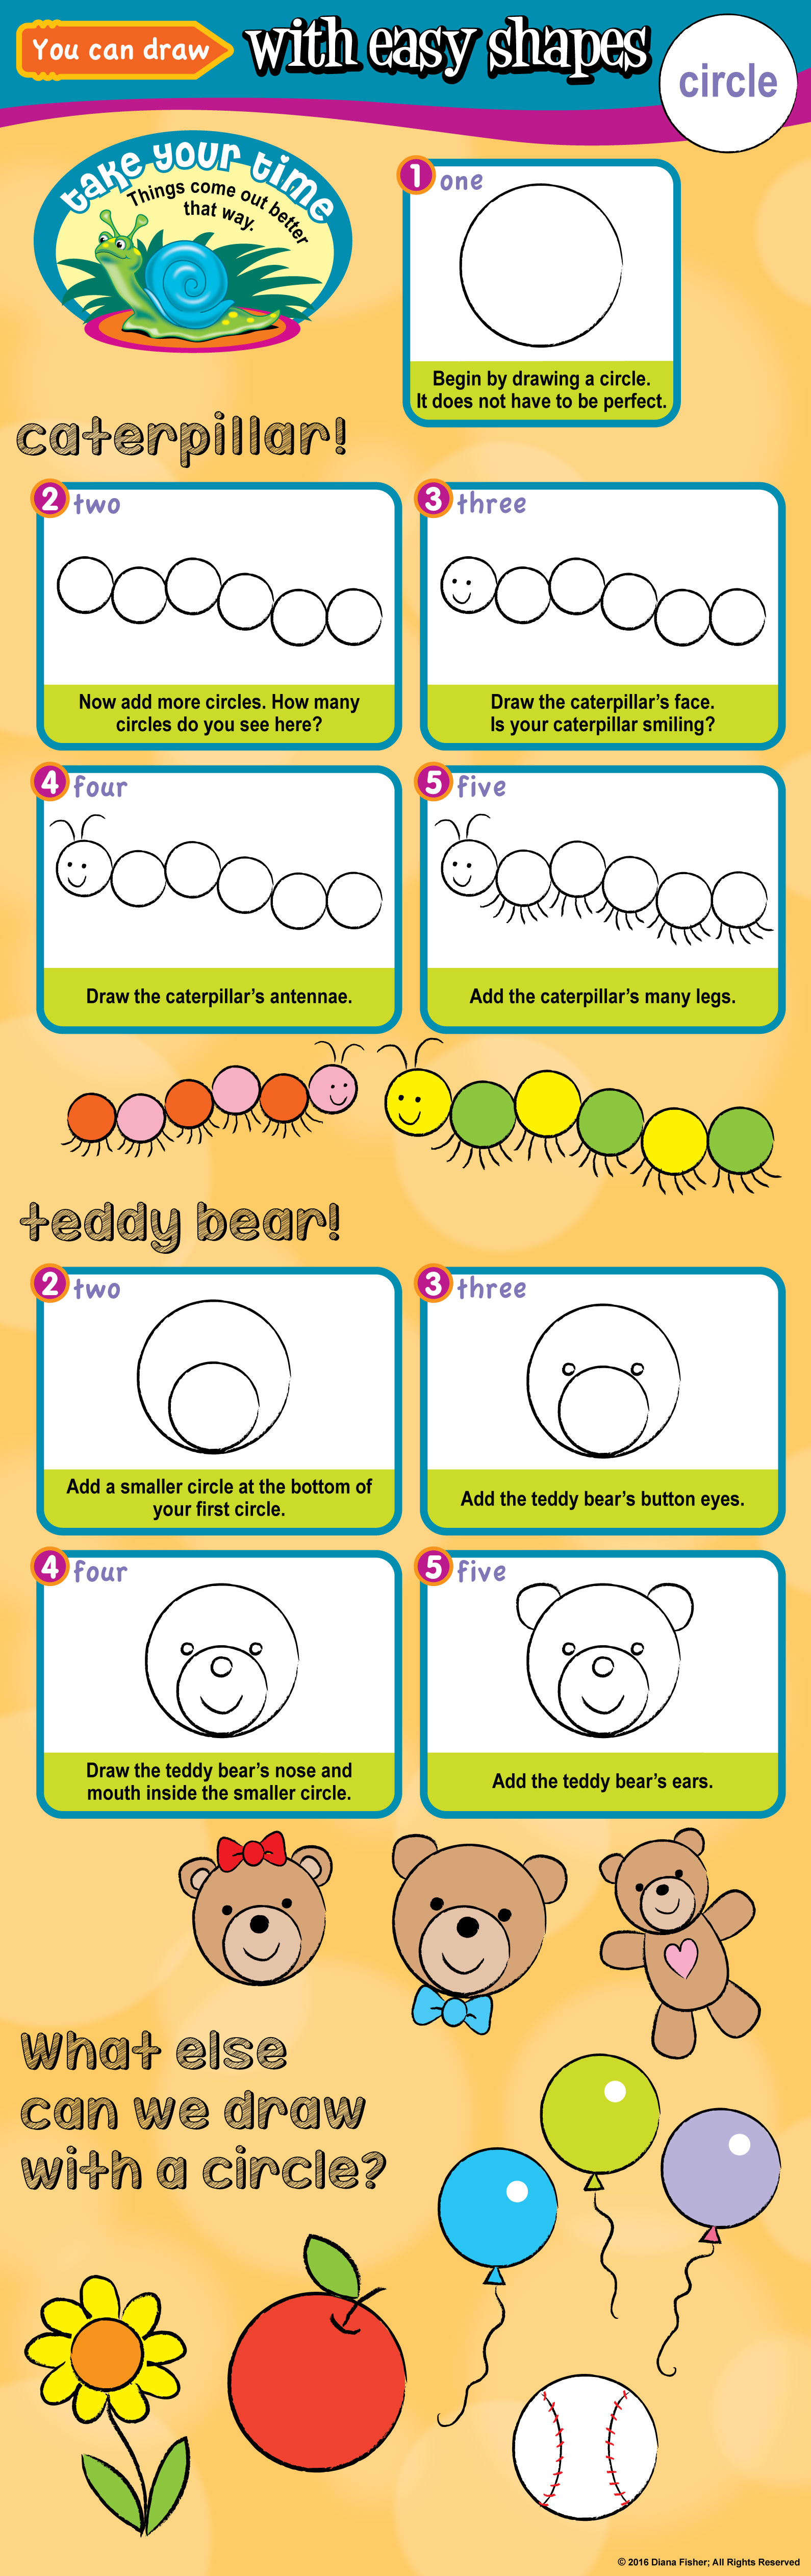 draw a teddy bear and a caterpillar with circles